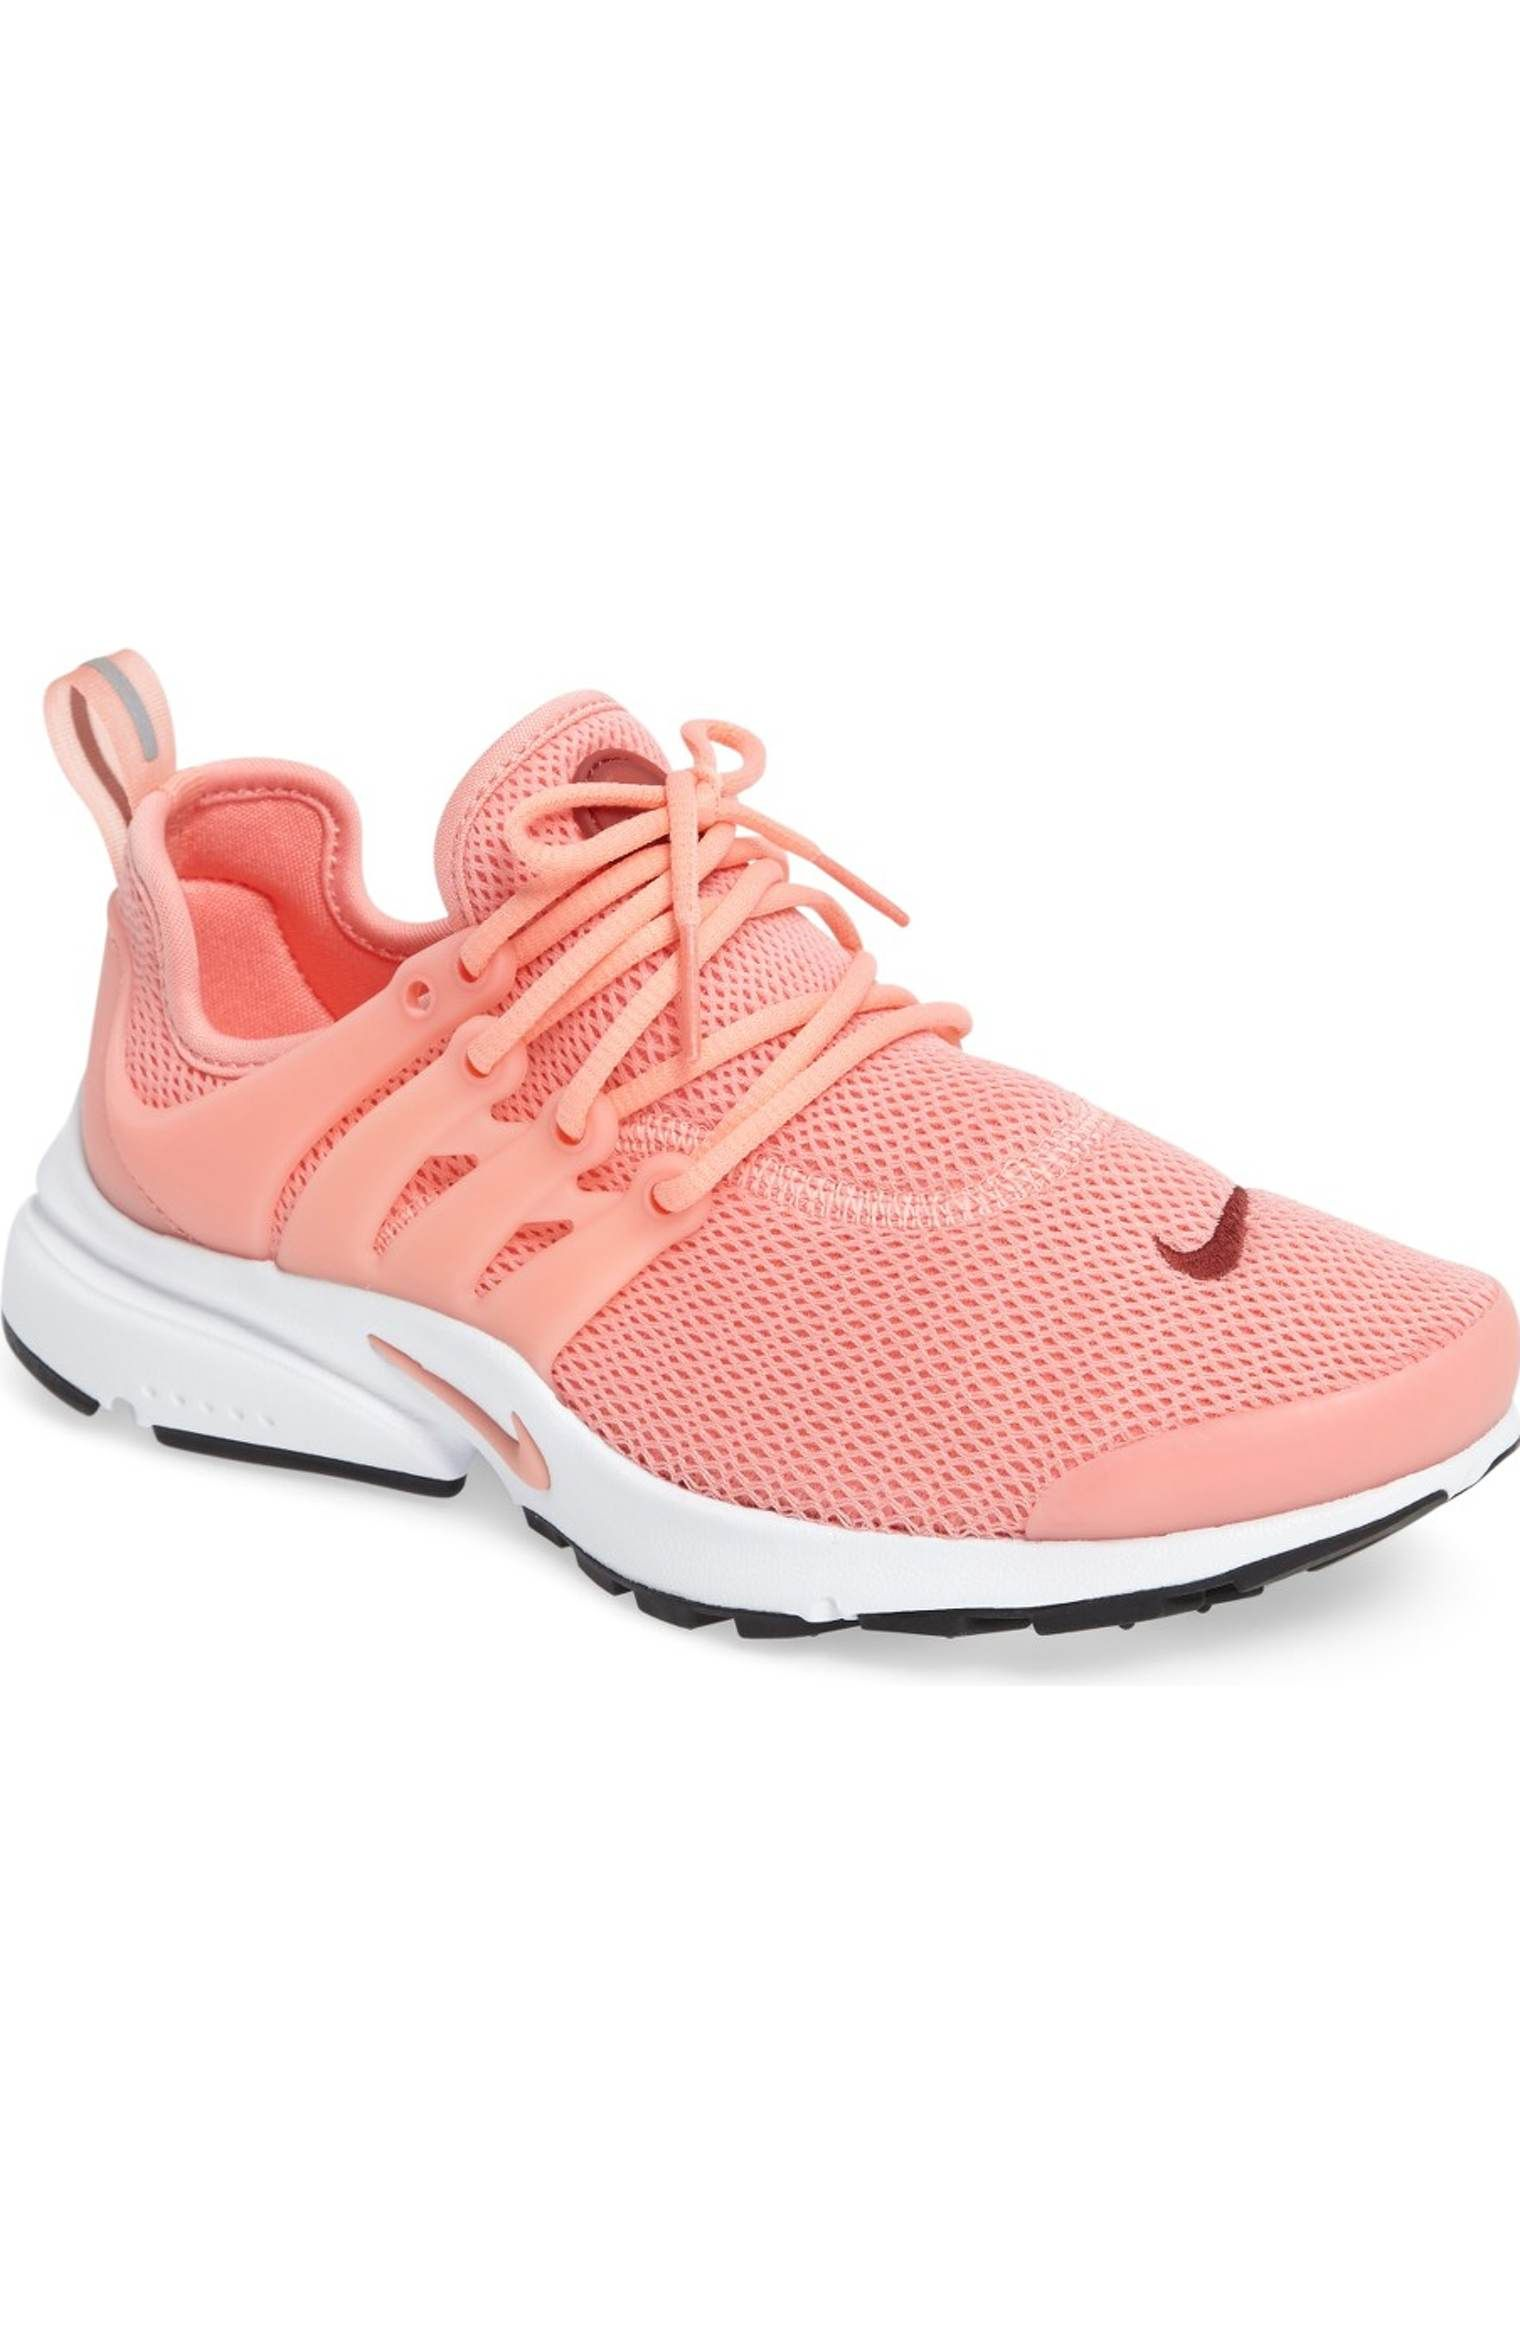 competitive price 0a381 678a7 Nike Shoes on | fashion queens ♡ in 2019 | Presto sneakers ...